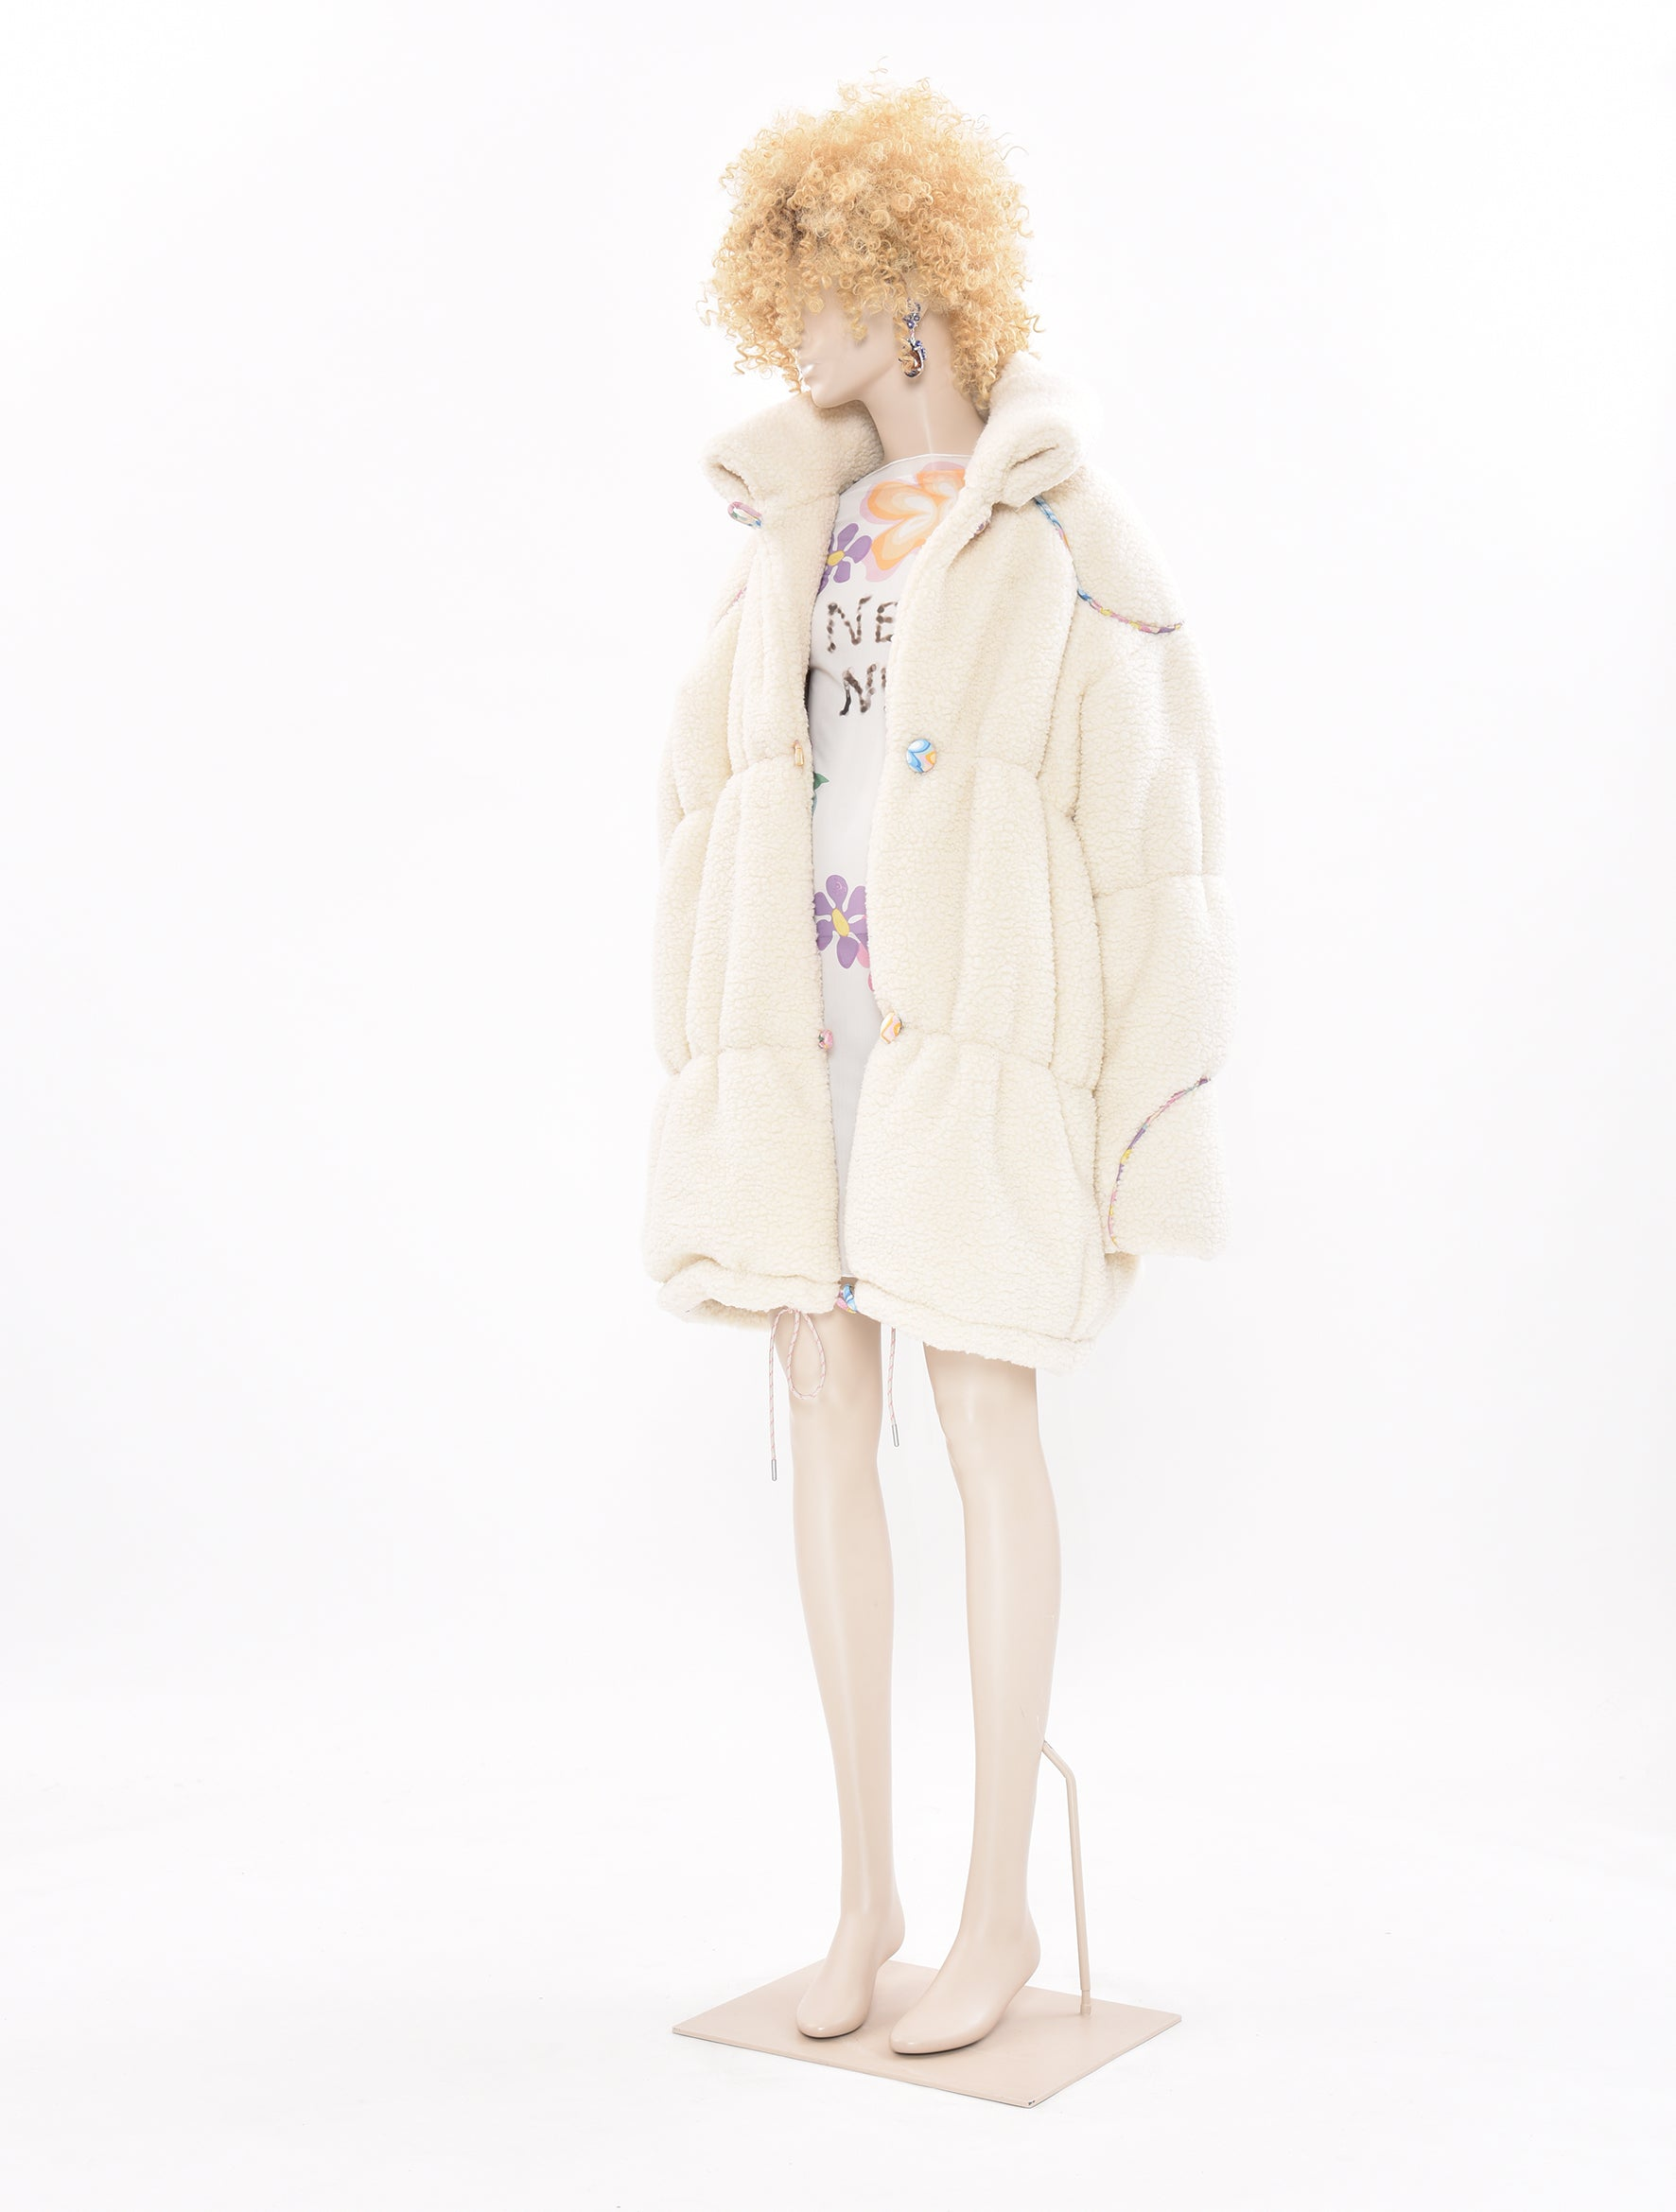 Neith Nyer DDP White Puffa Coat